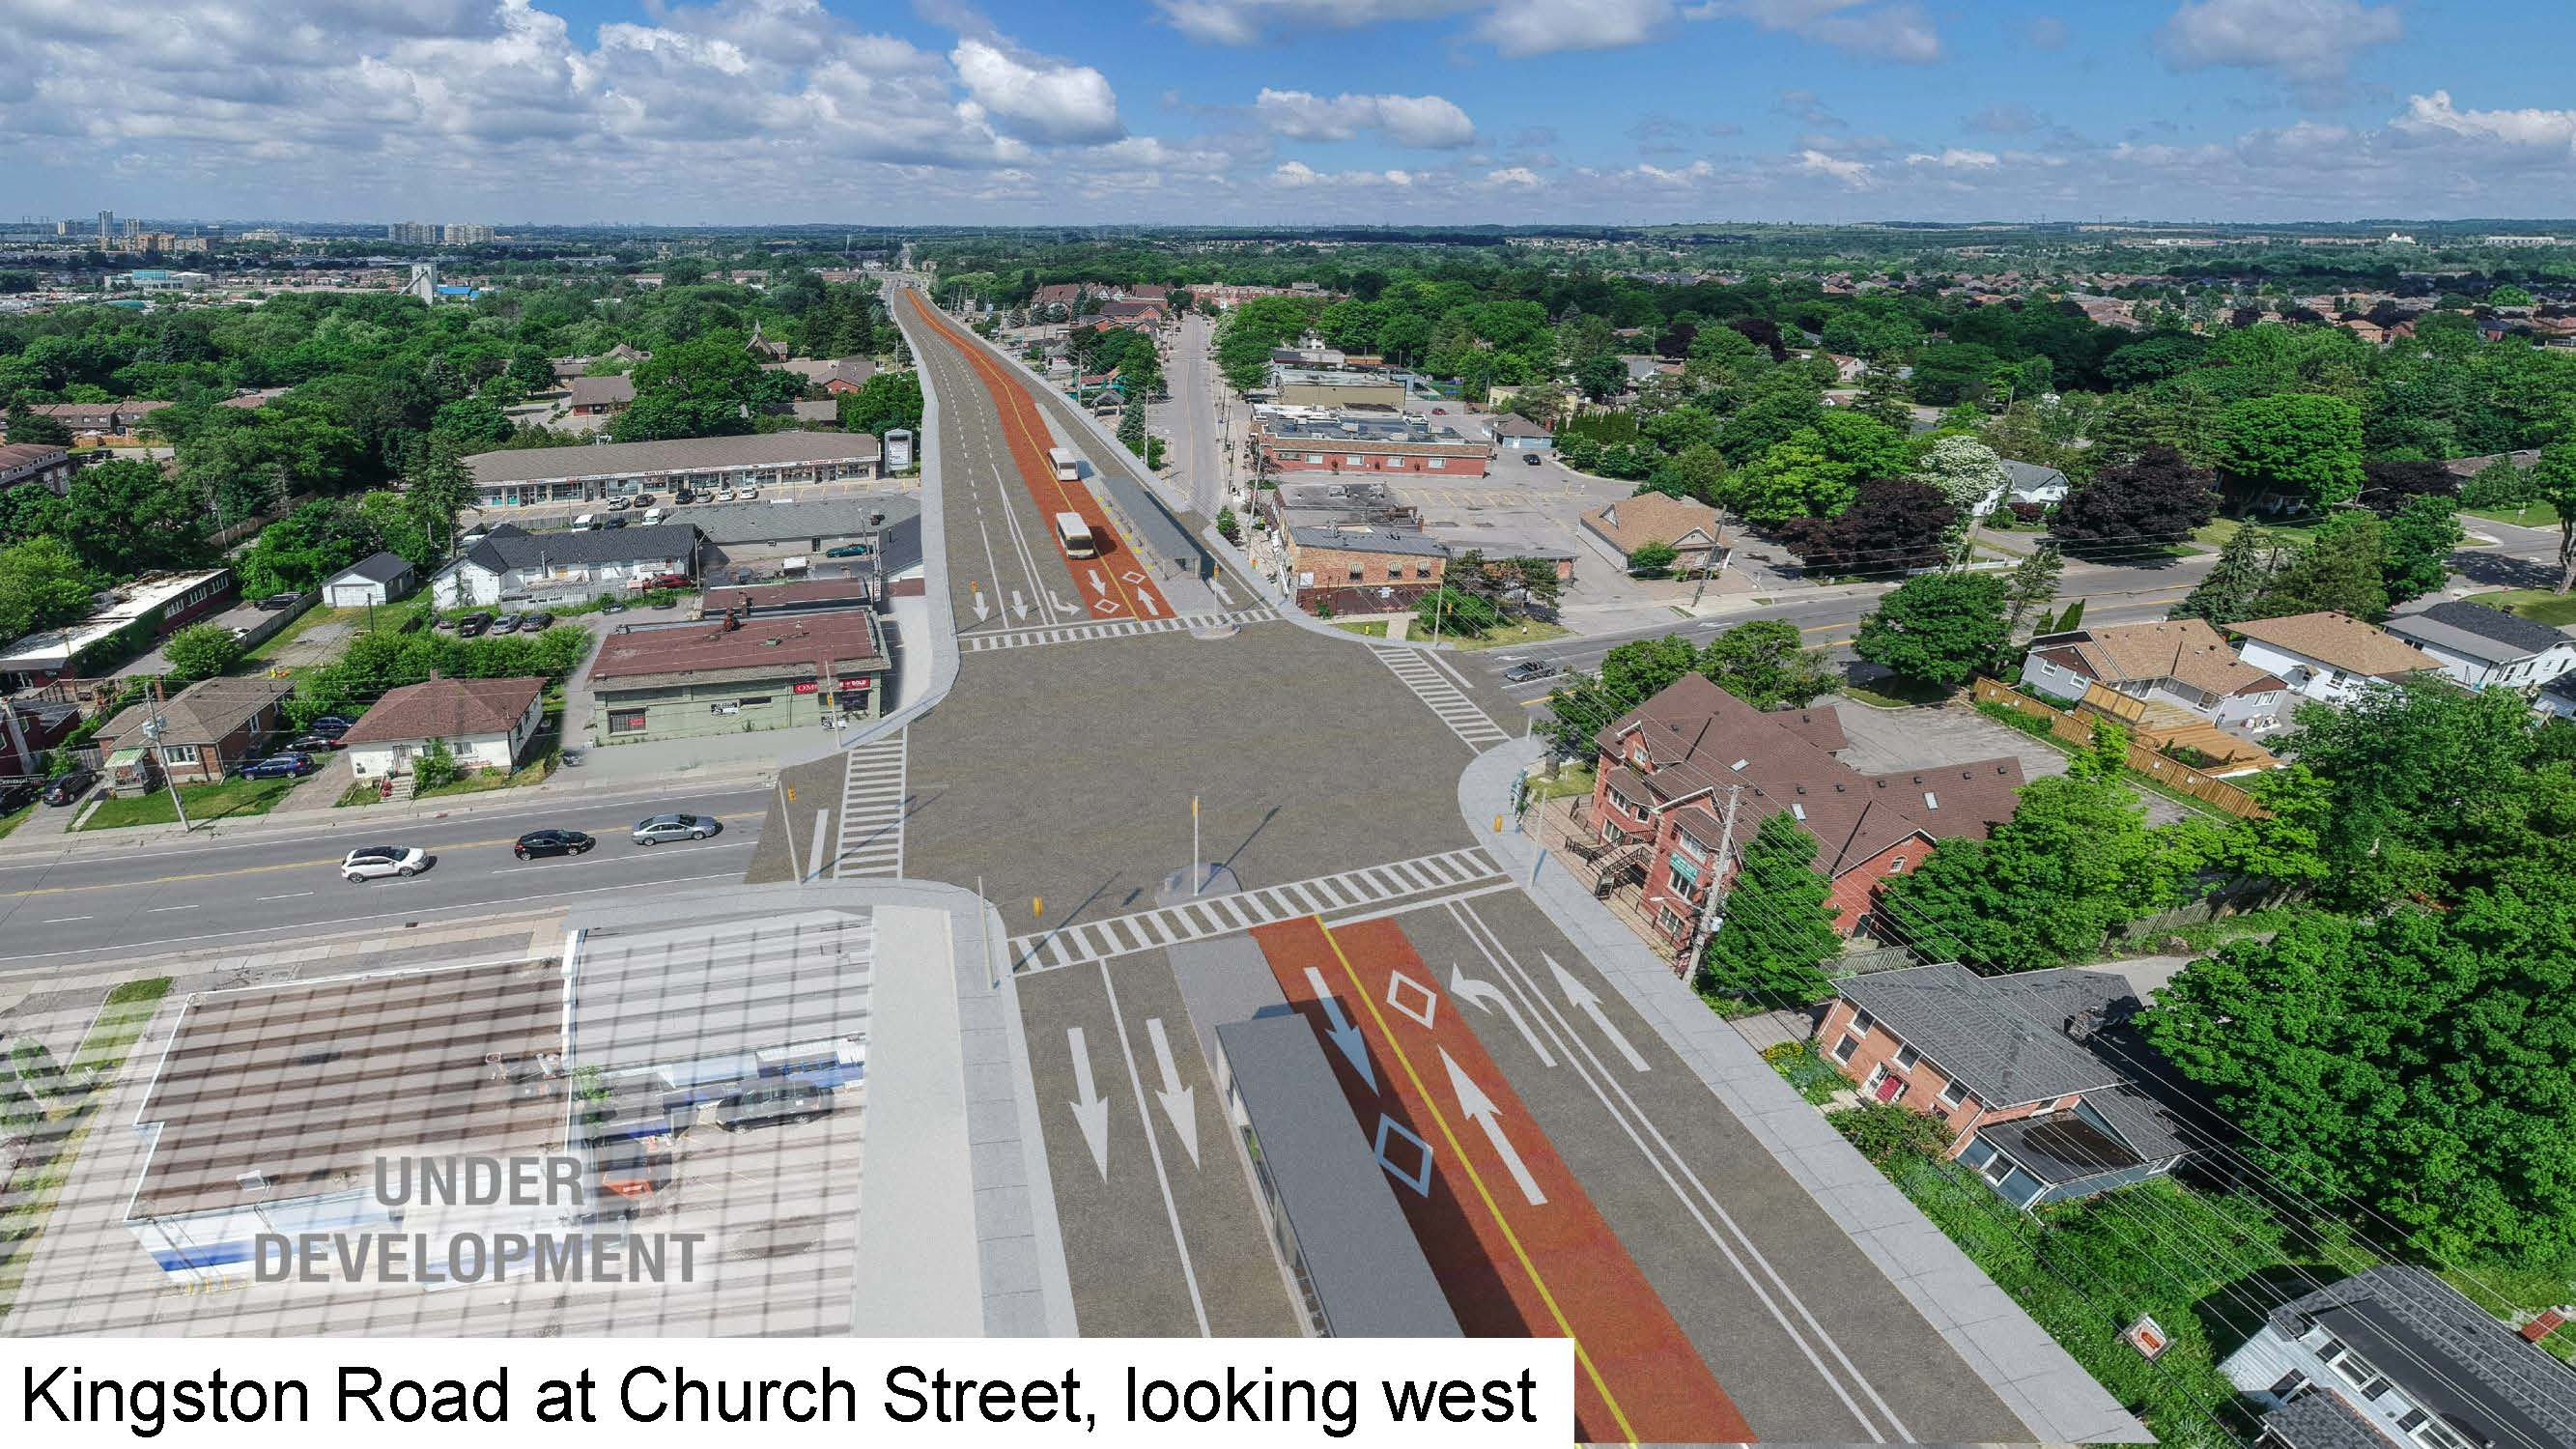 Rendering of Kingston Road at Church Street, looking west